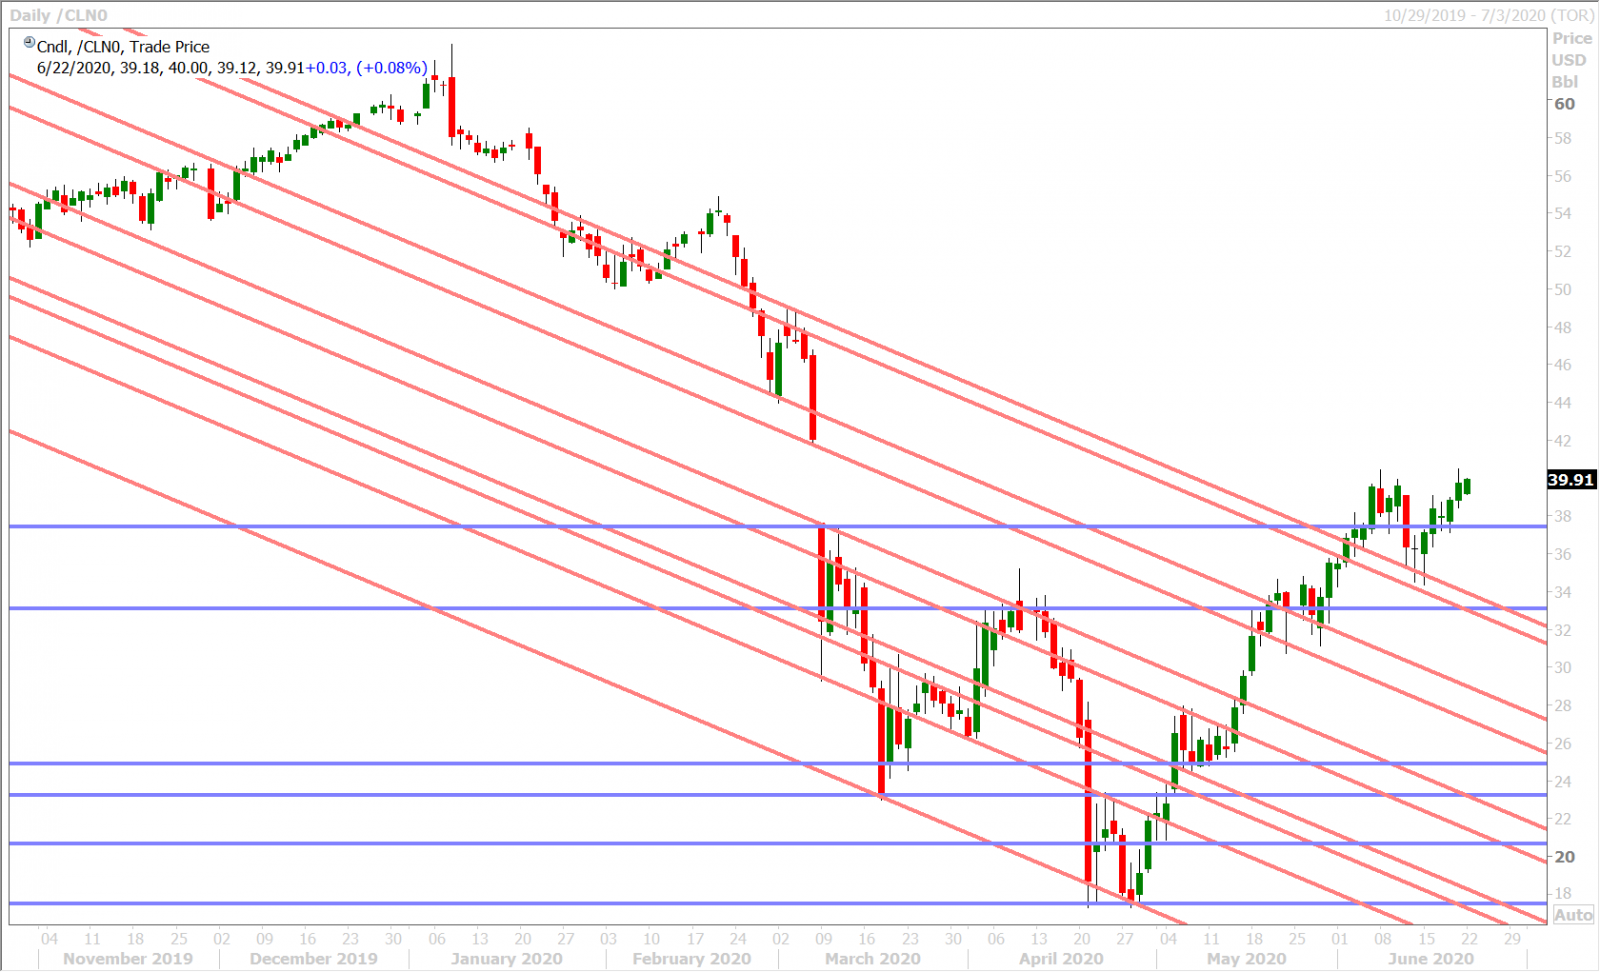 JULY CRUDE OIL DAILY